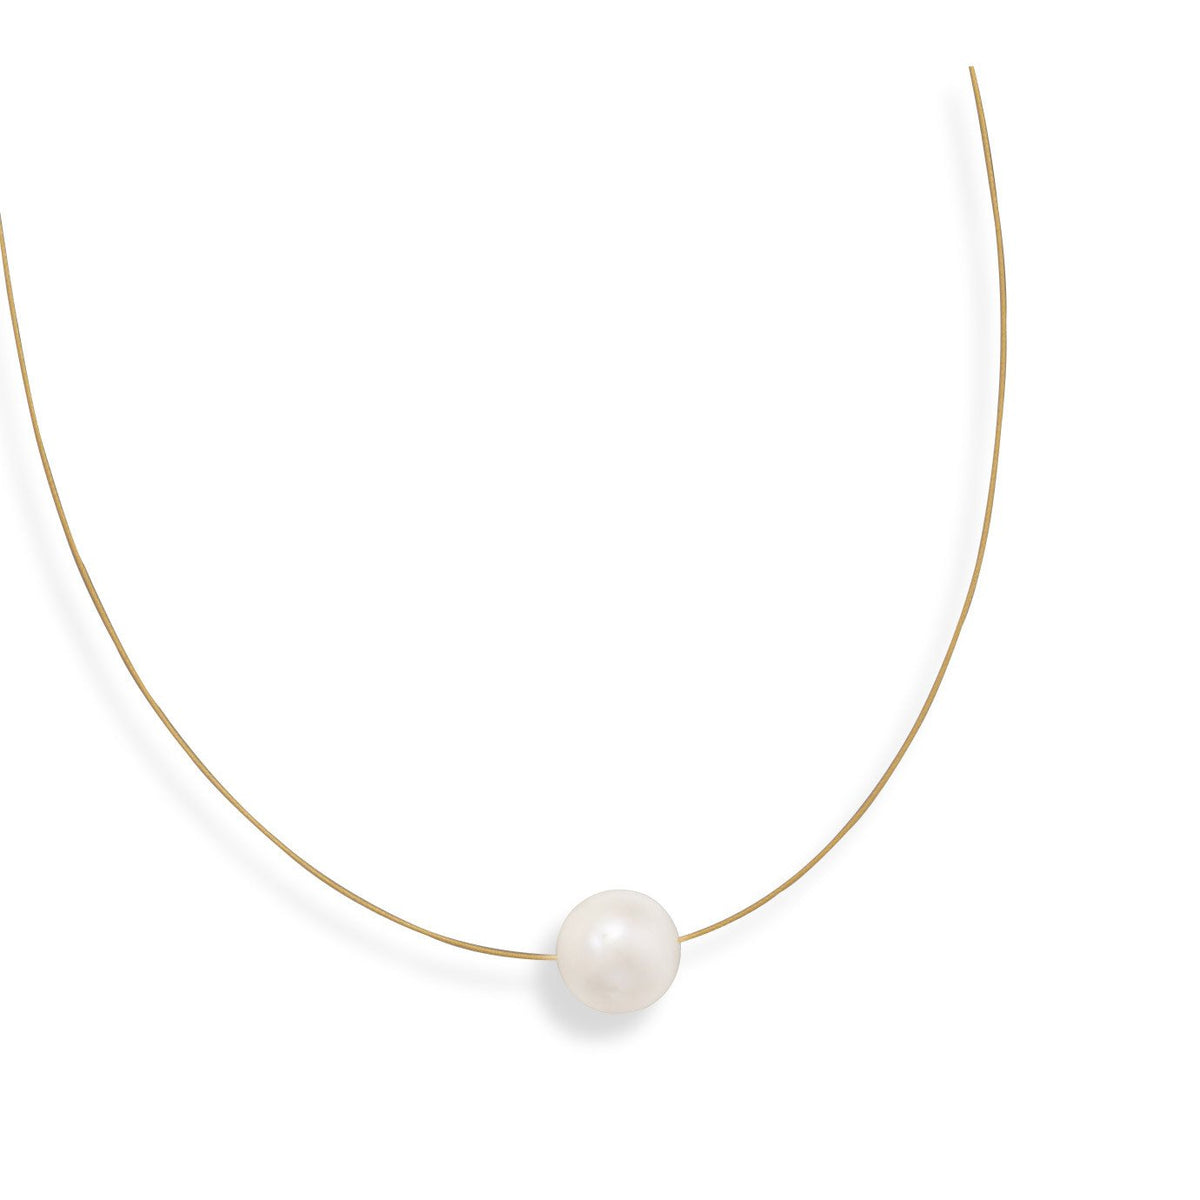 "16"" 24 Karat Gold Plated Necklace with Cultured Freshwater Pearl"